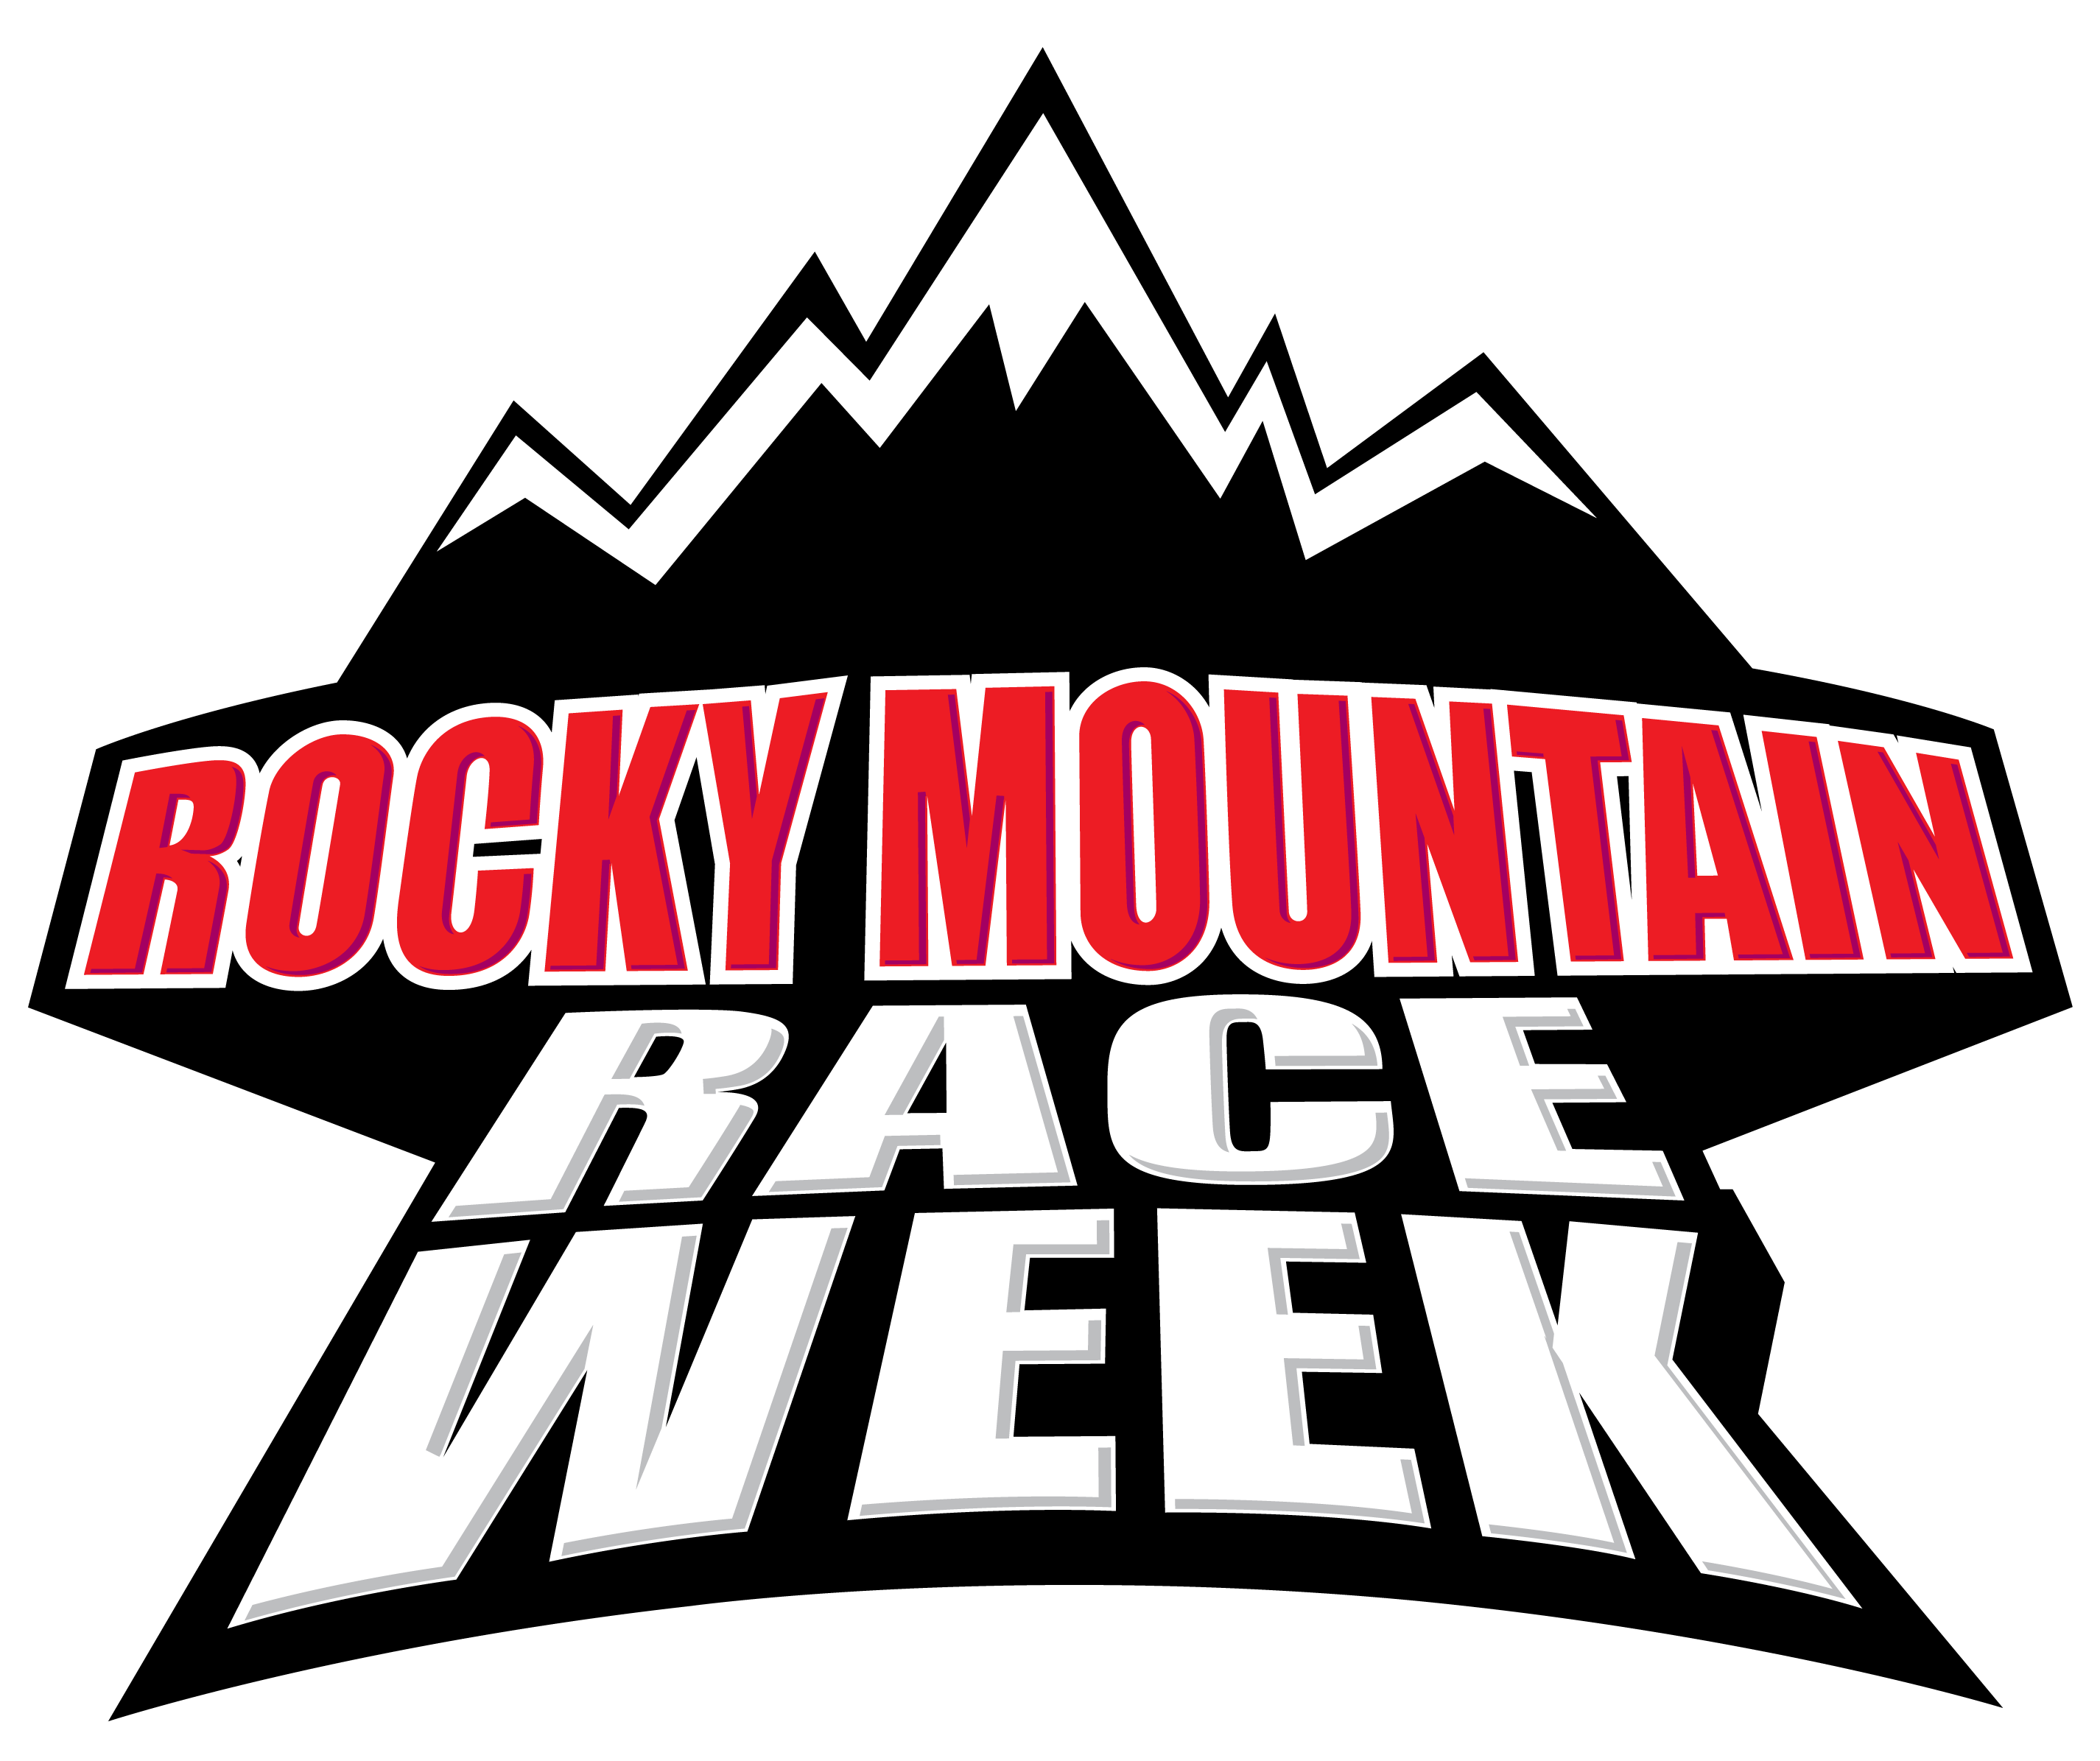 417-4178466_rocky-mountain-race-week-logo copy